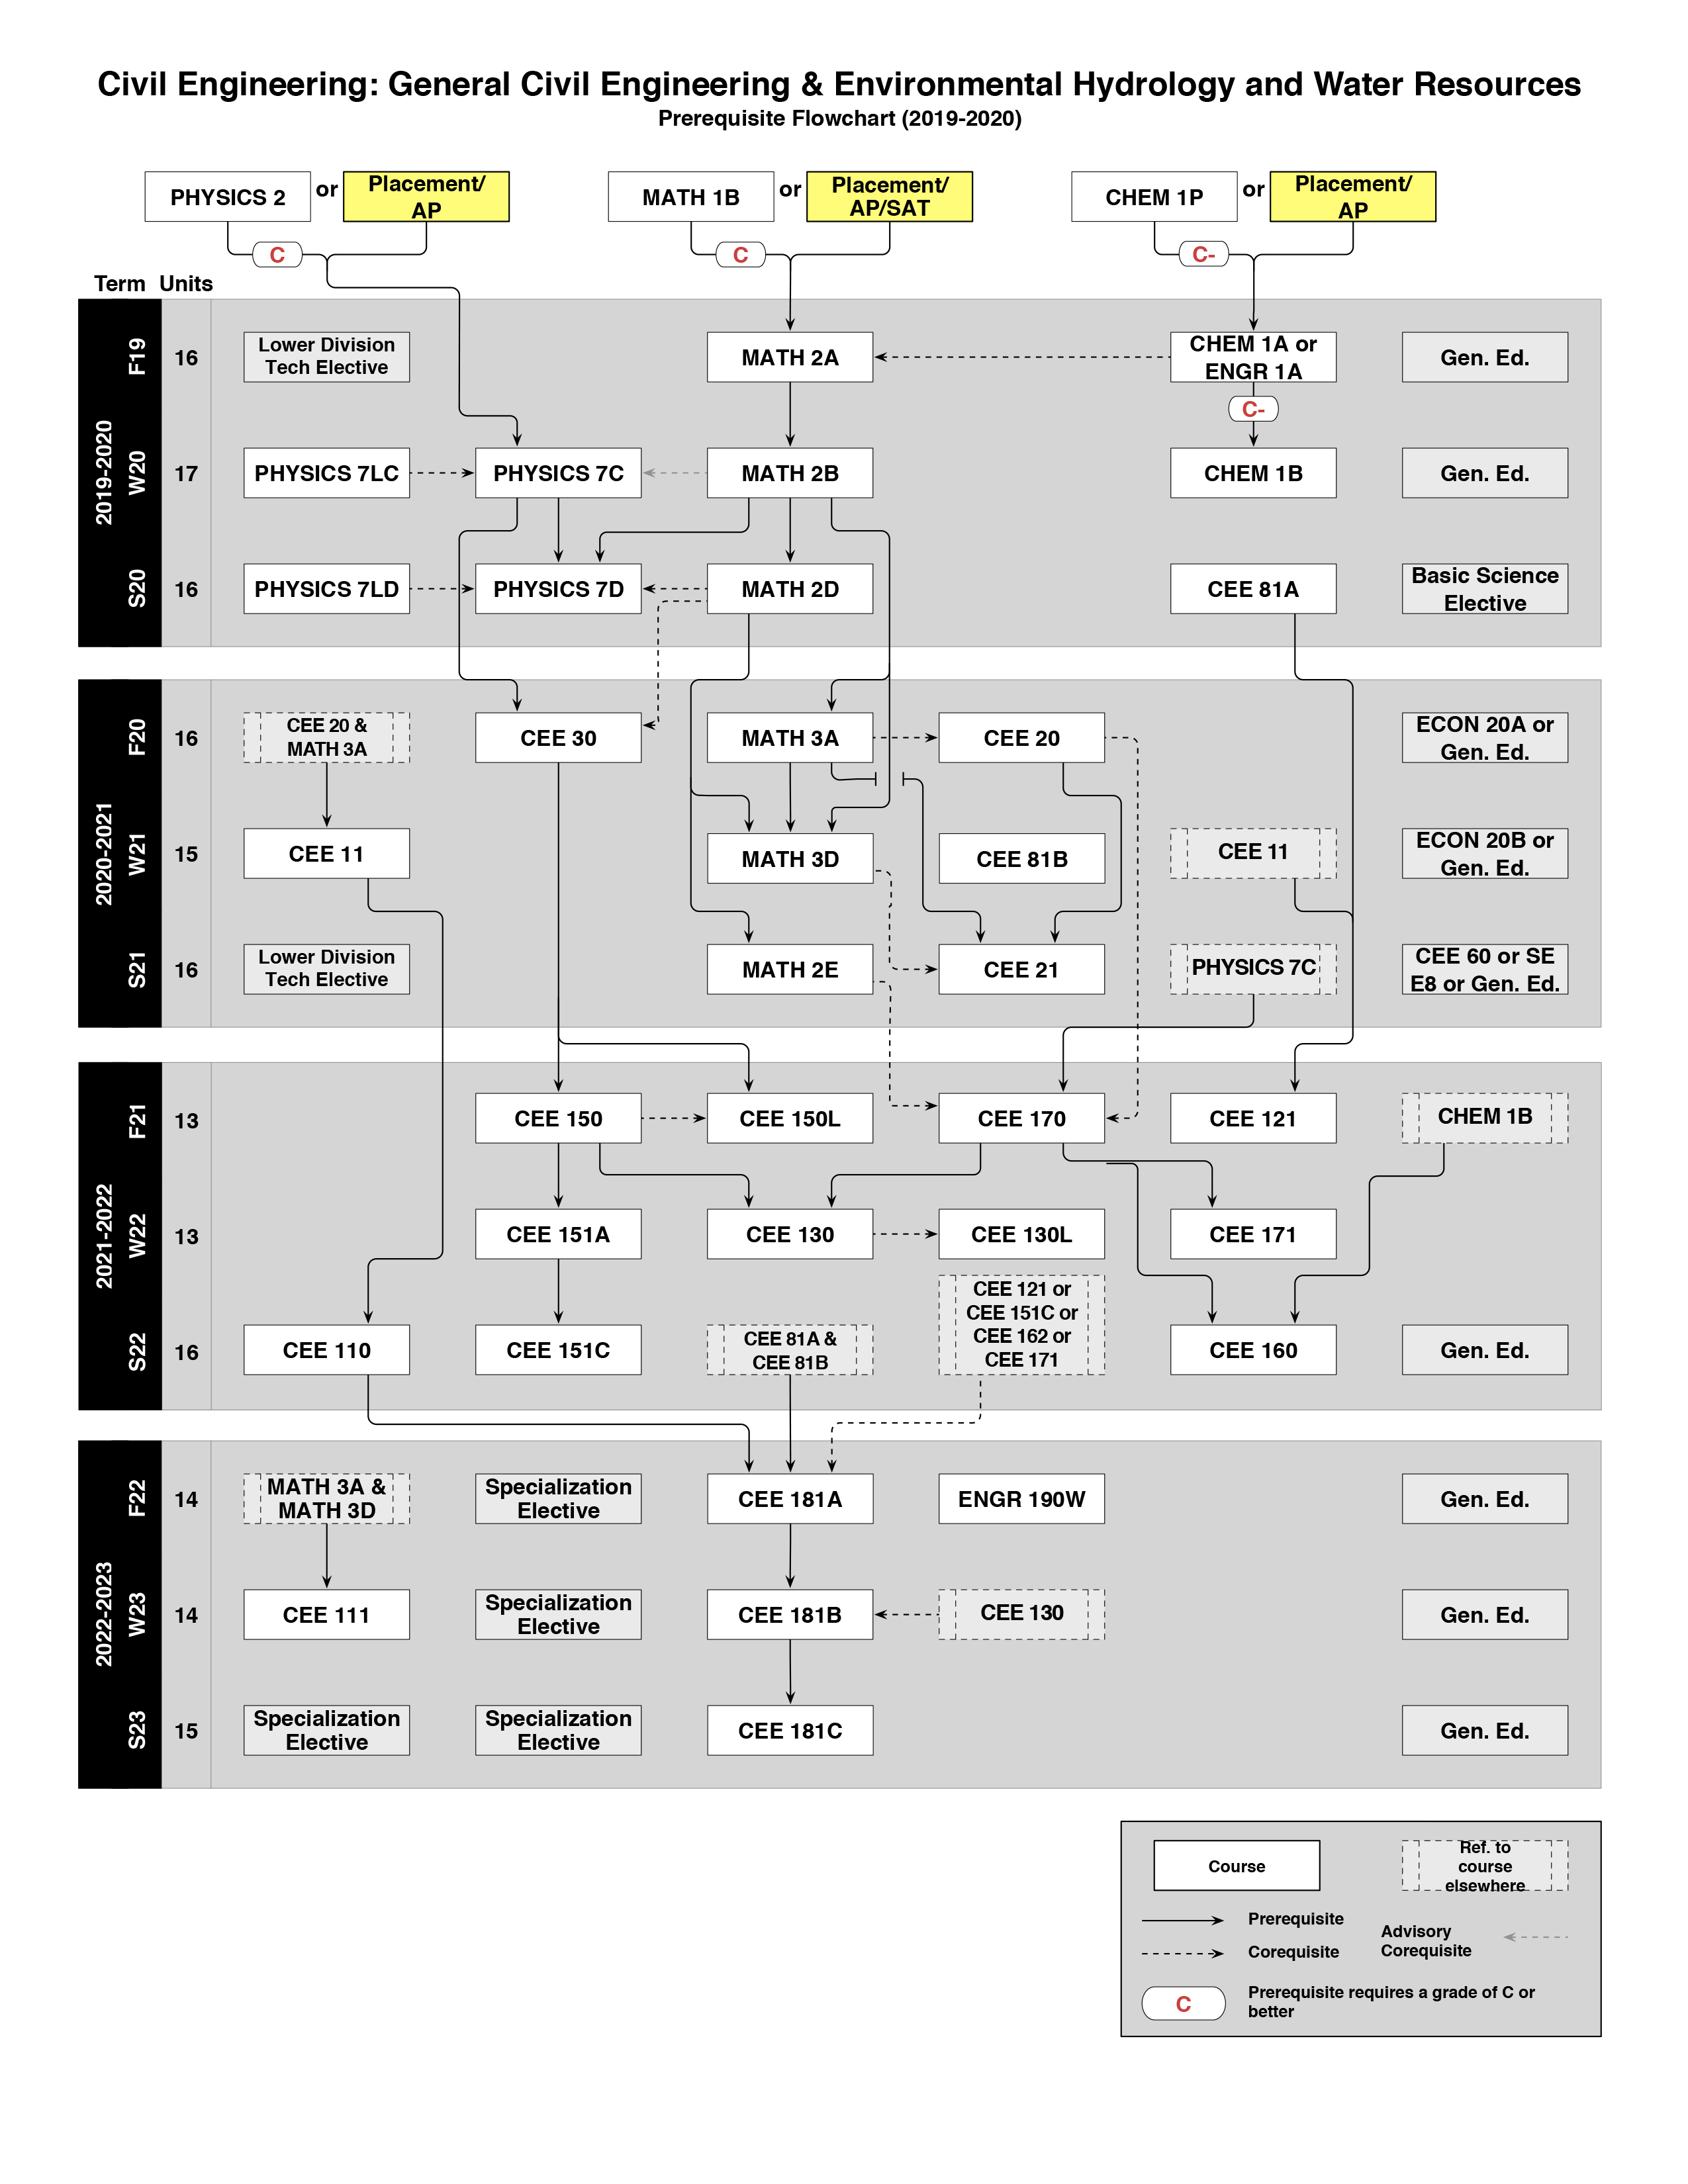 Civil Engineering (General Hydrology) Flowchart